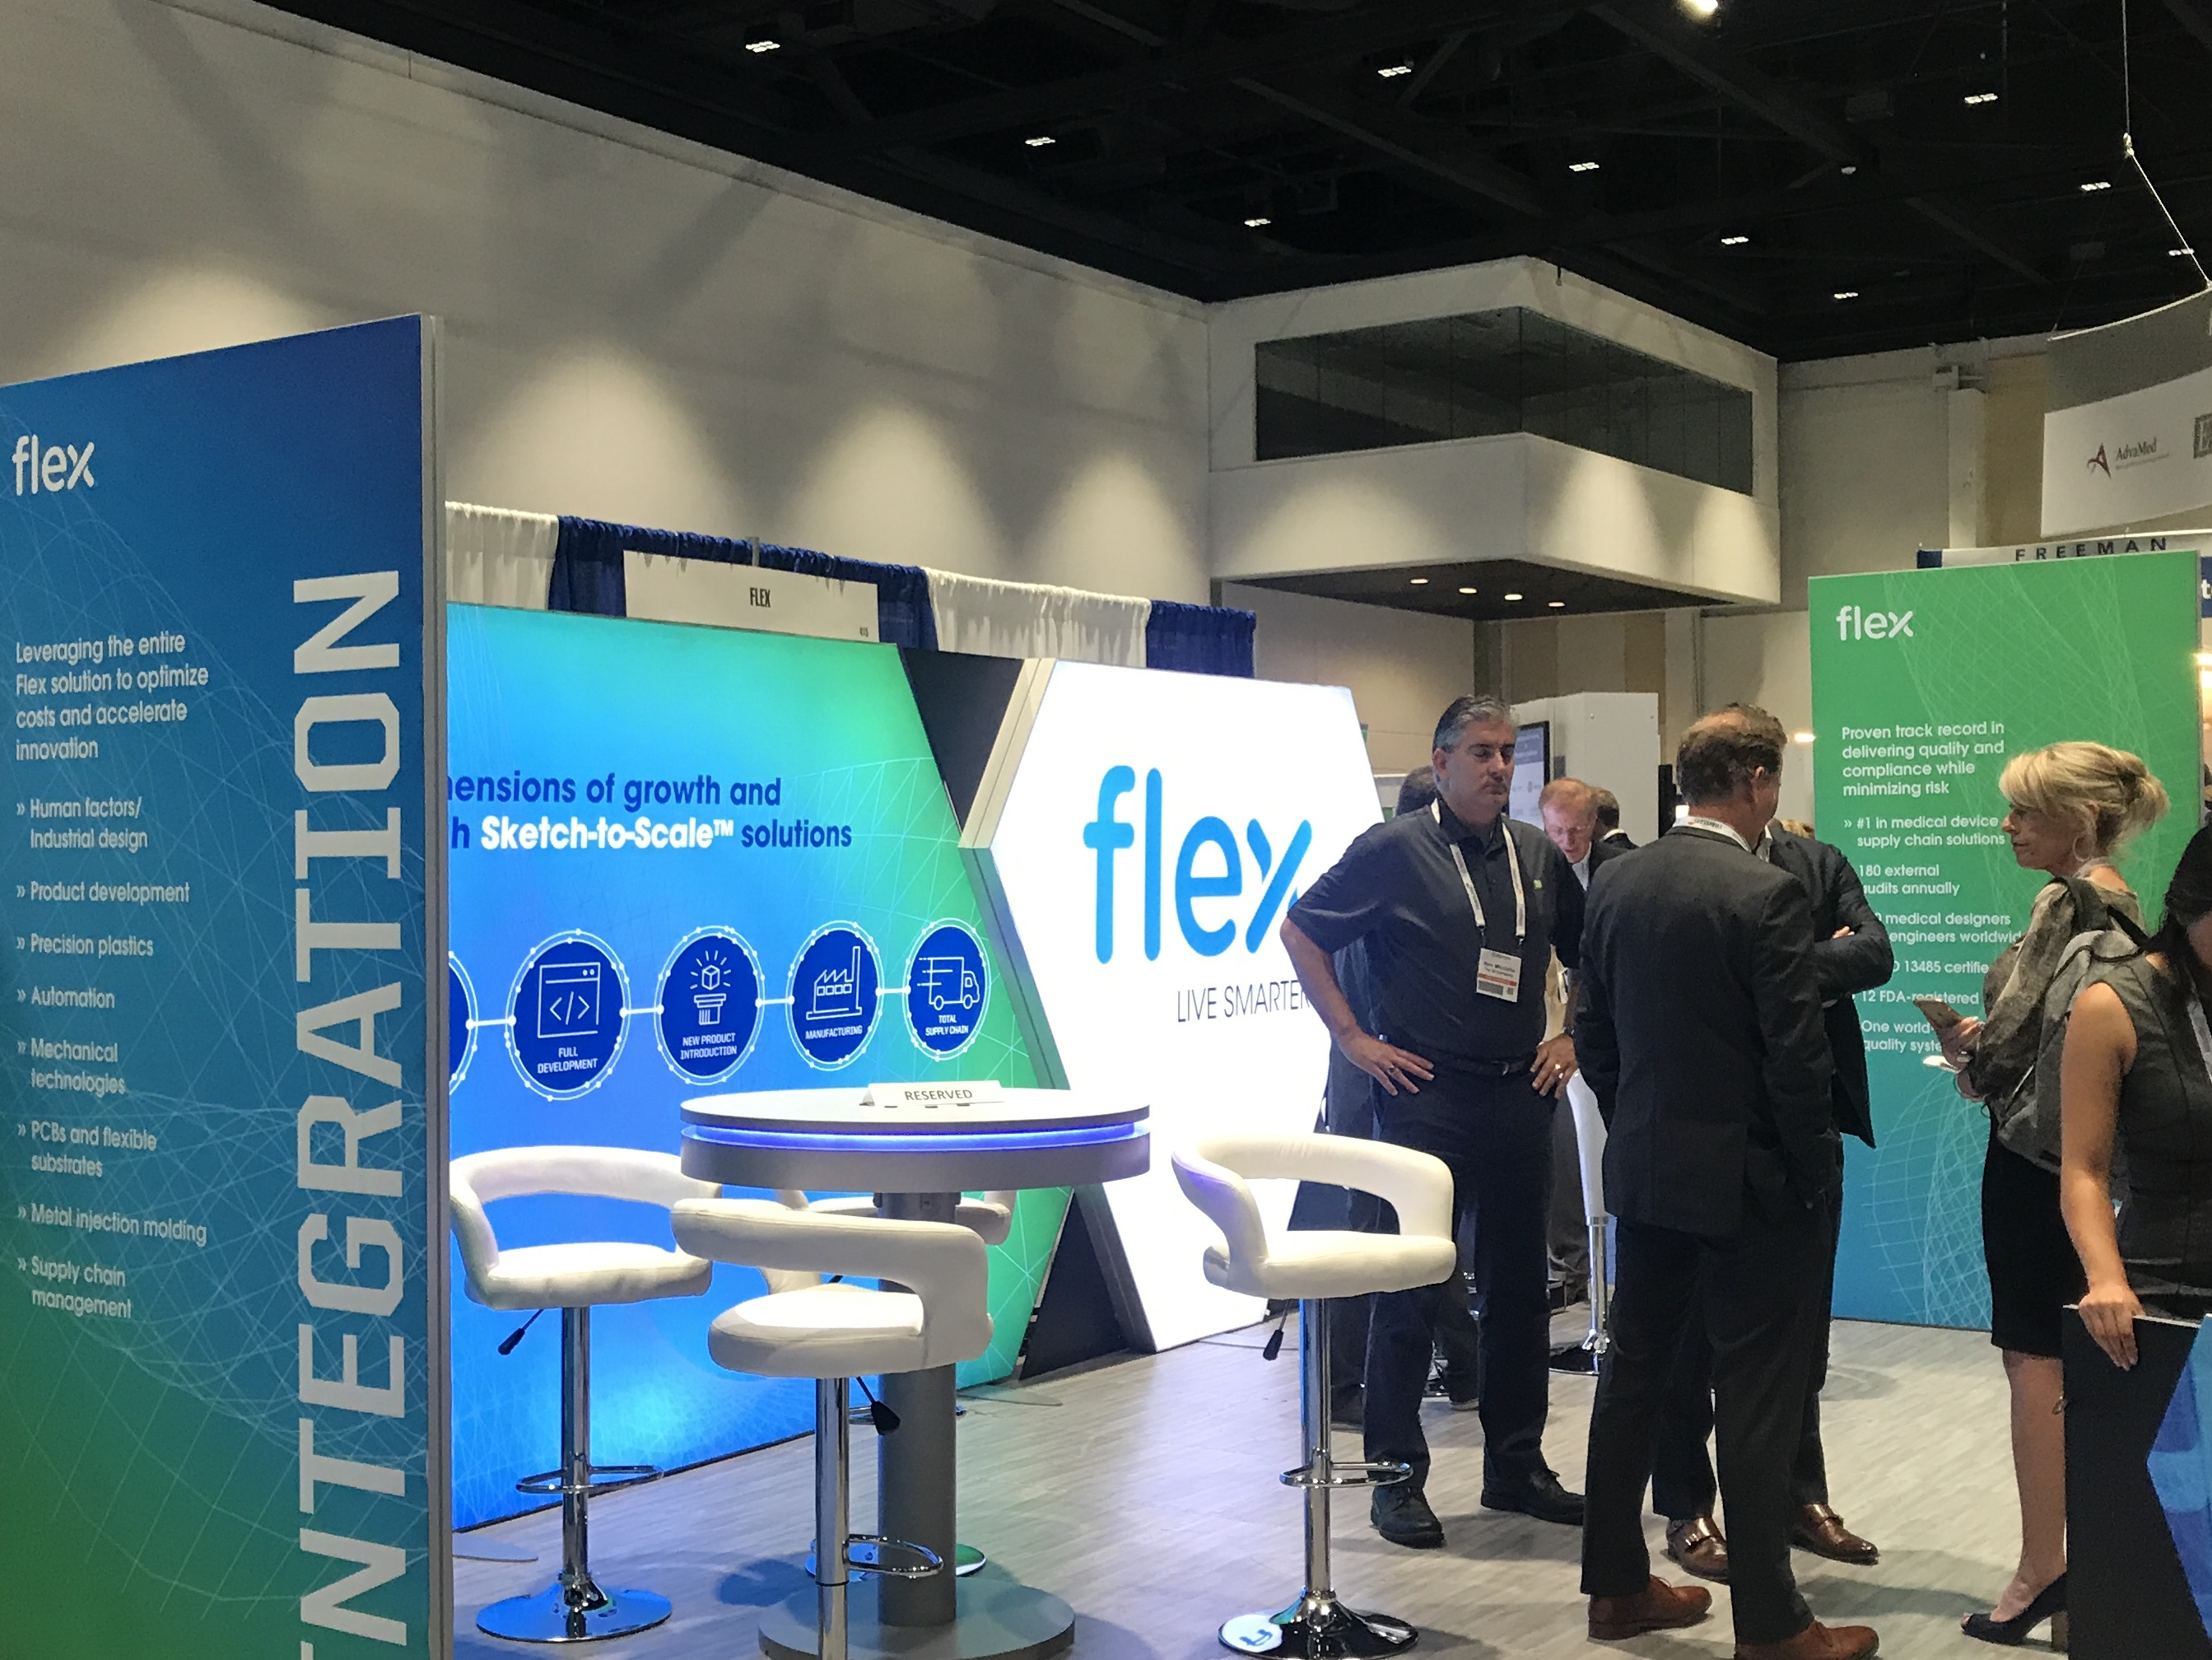 Flex's presence at MedTech Conference yields opportunities for manufacturing and medical company collaboration.